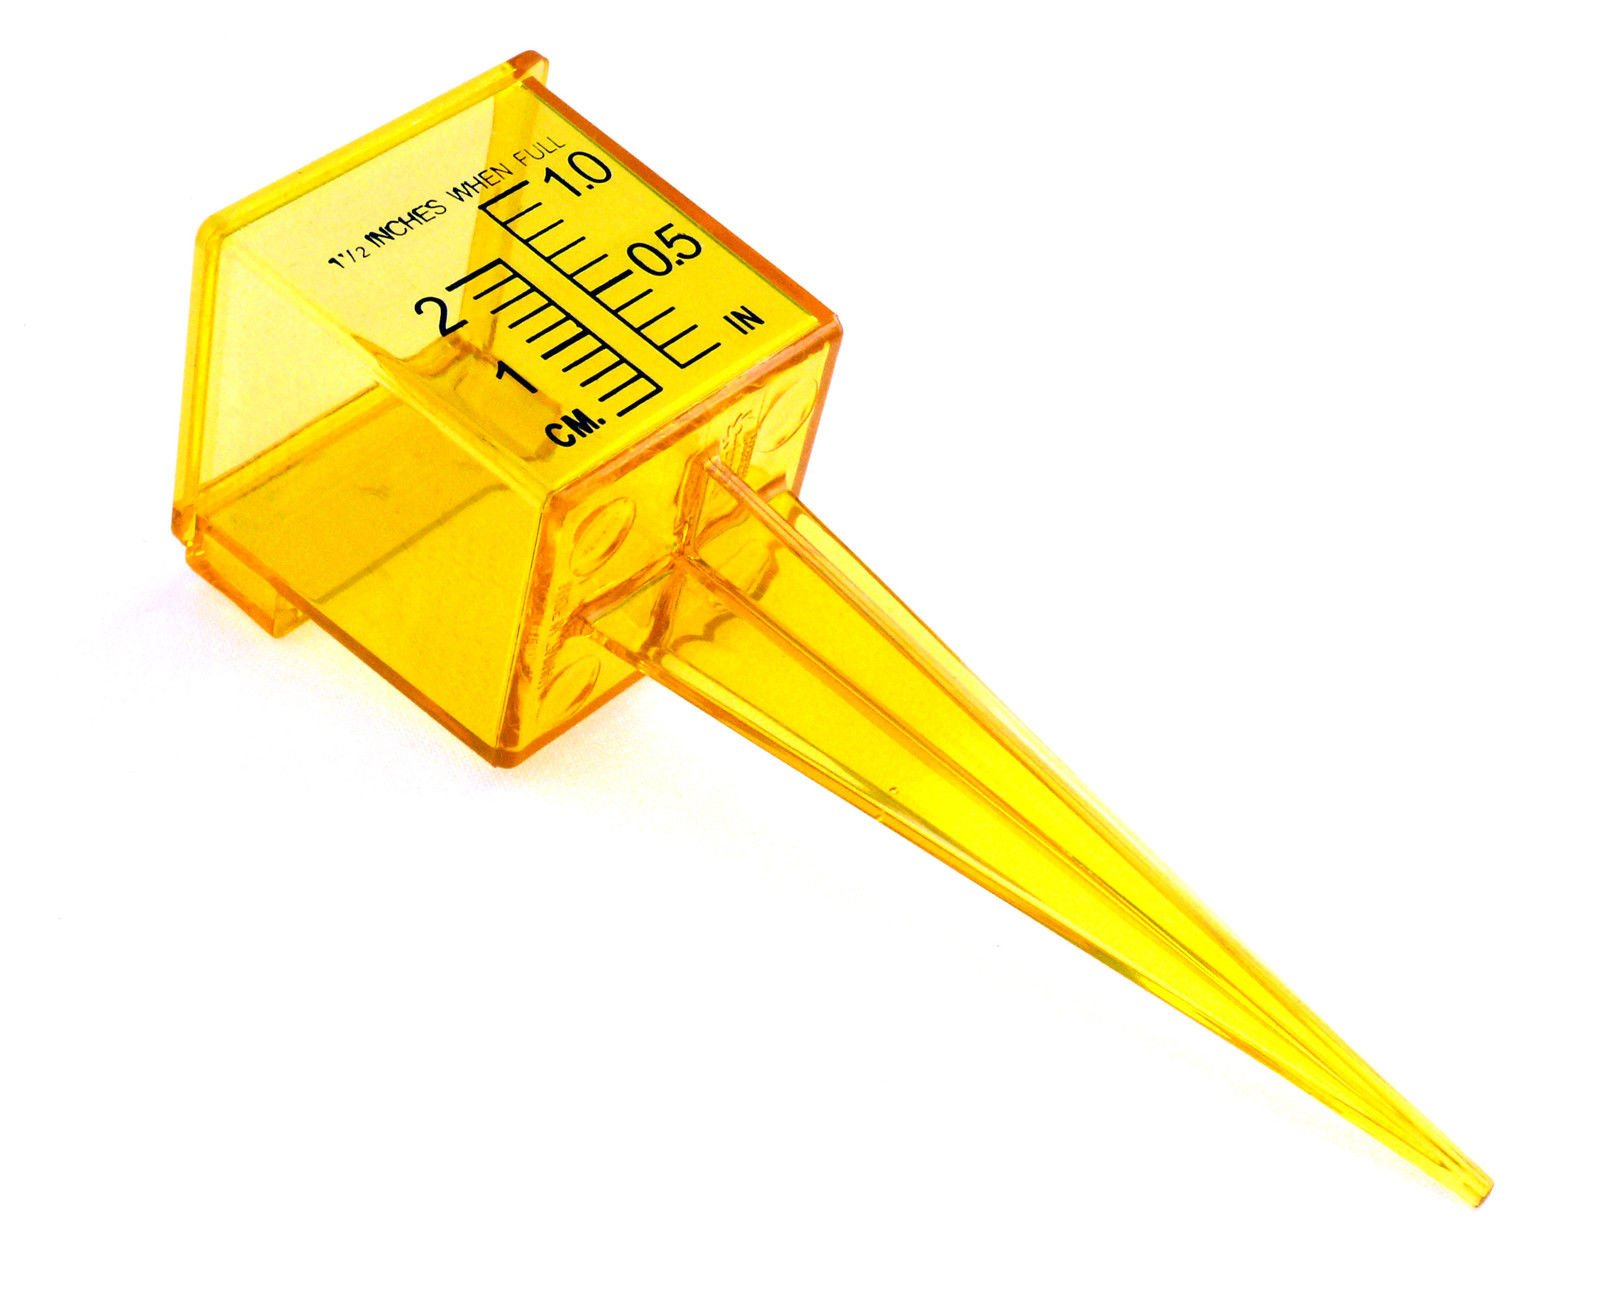 Generic O-8-O-0497-O ool outdoor asuring Lawn & Garden outdoo Rain Gauge awn & G measuring tool ight Ye 1.5'' Bright Yellow HX-US5-16Mar28-2232